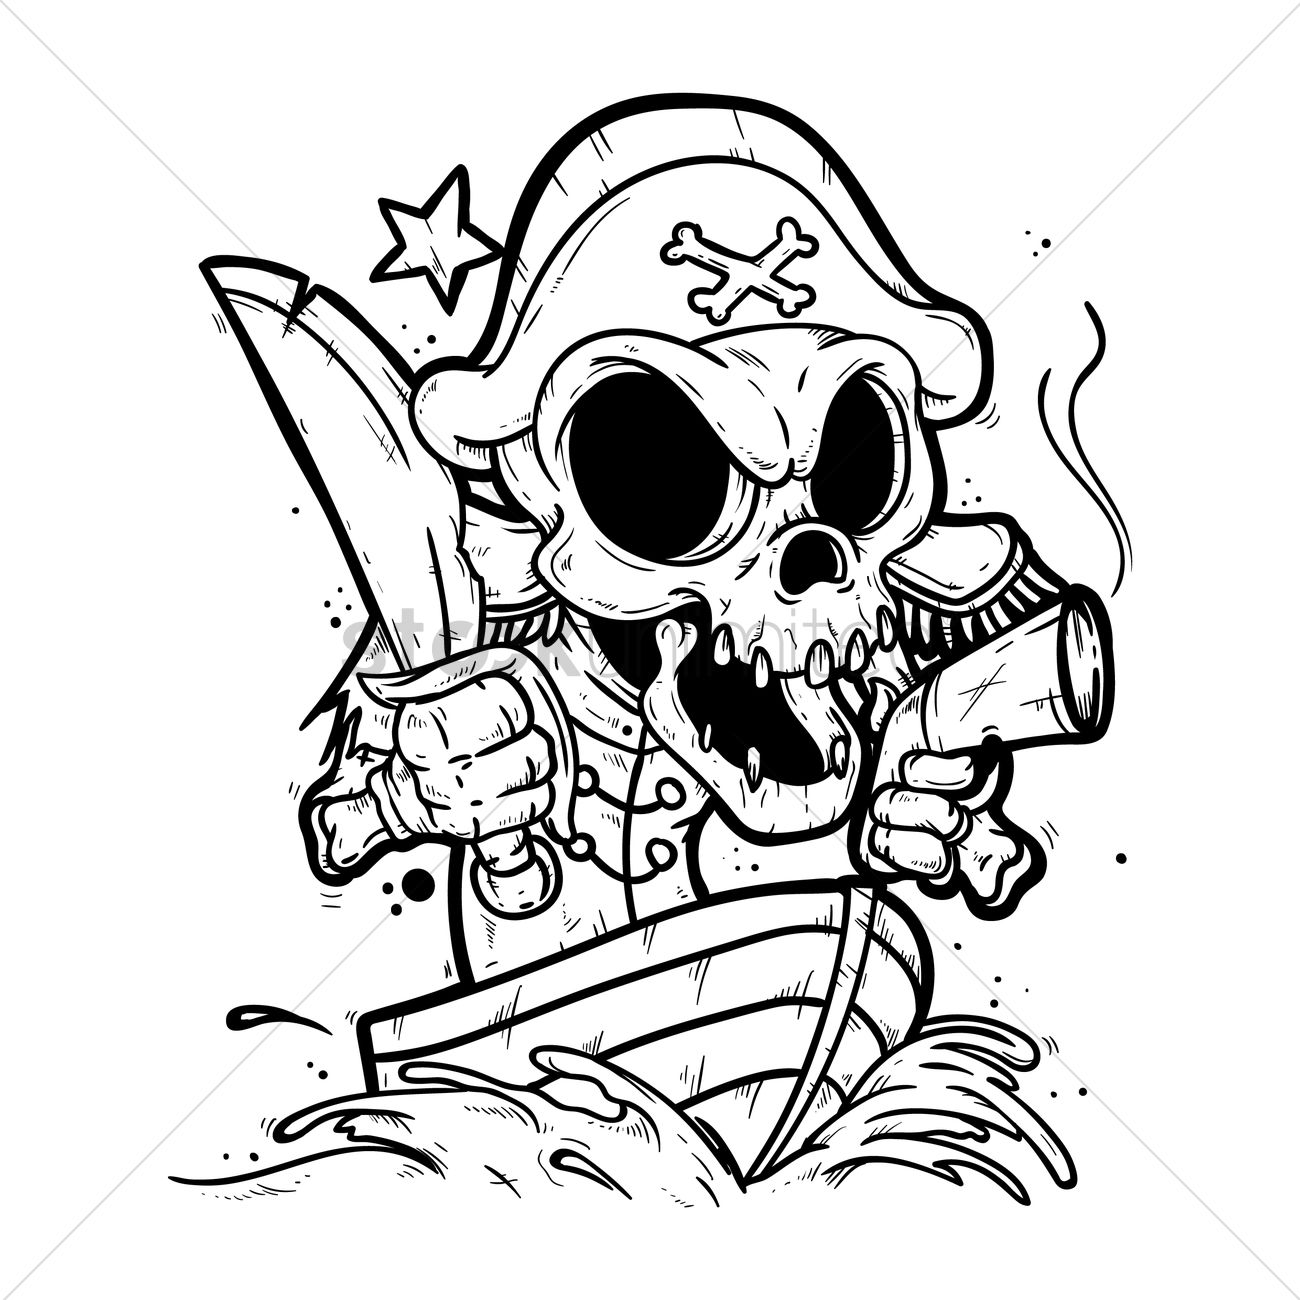 Skeleton Pirate In A Boat Vector Image 1872751 Stockunlimited Ship Diagram With Labels Google Search Pirates Ships Graphic